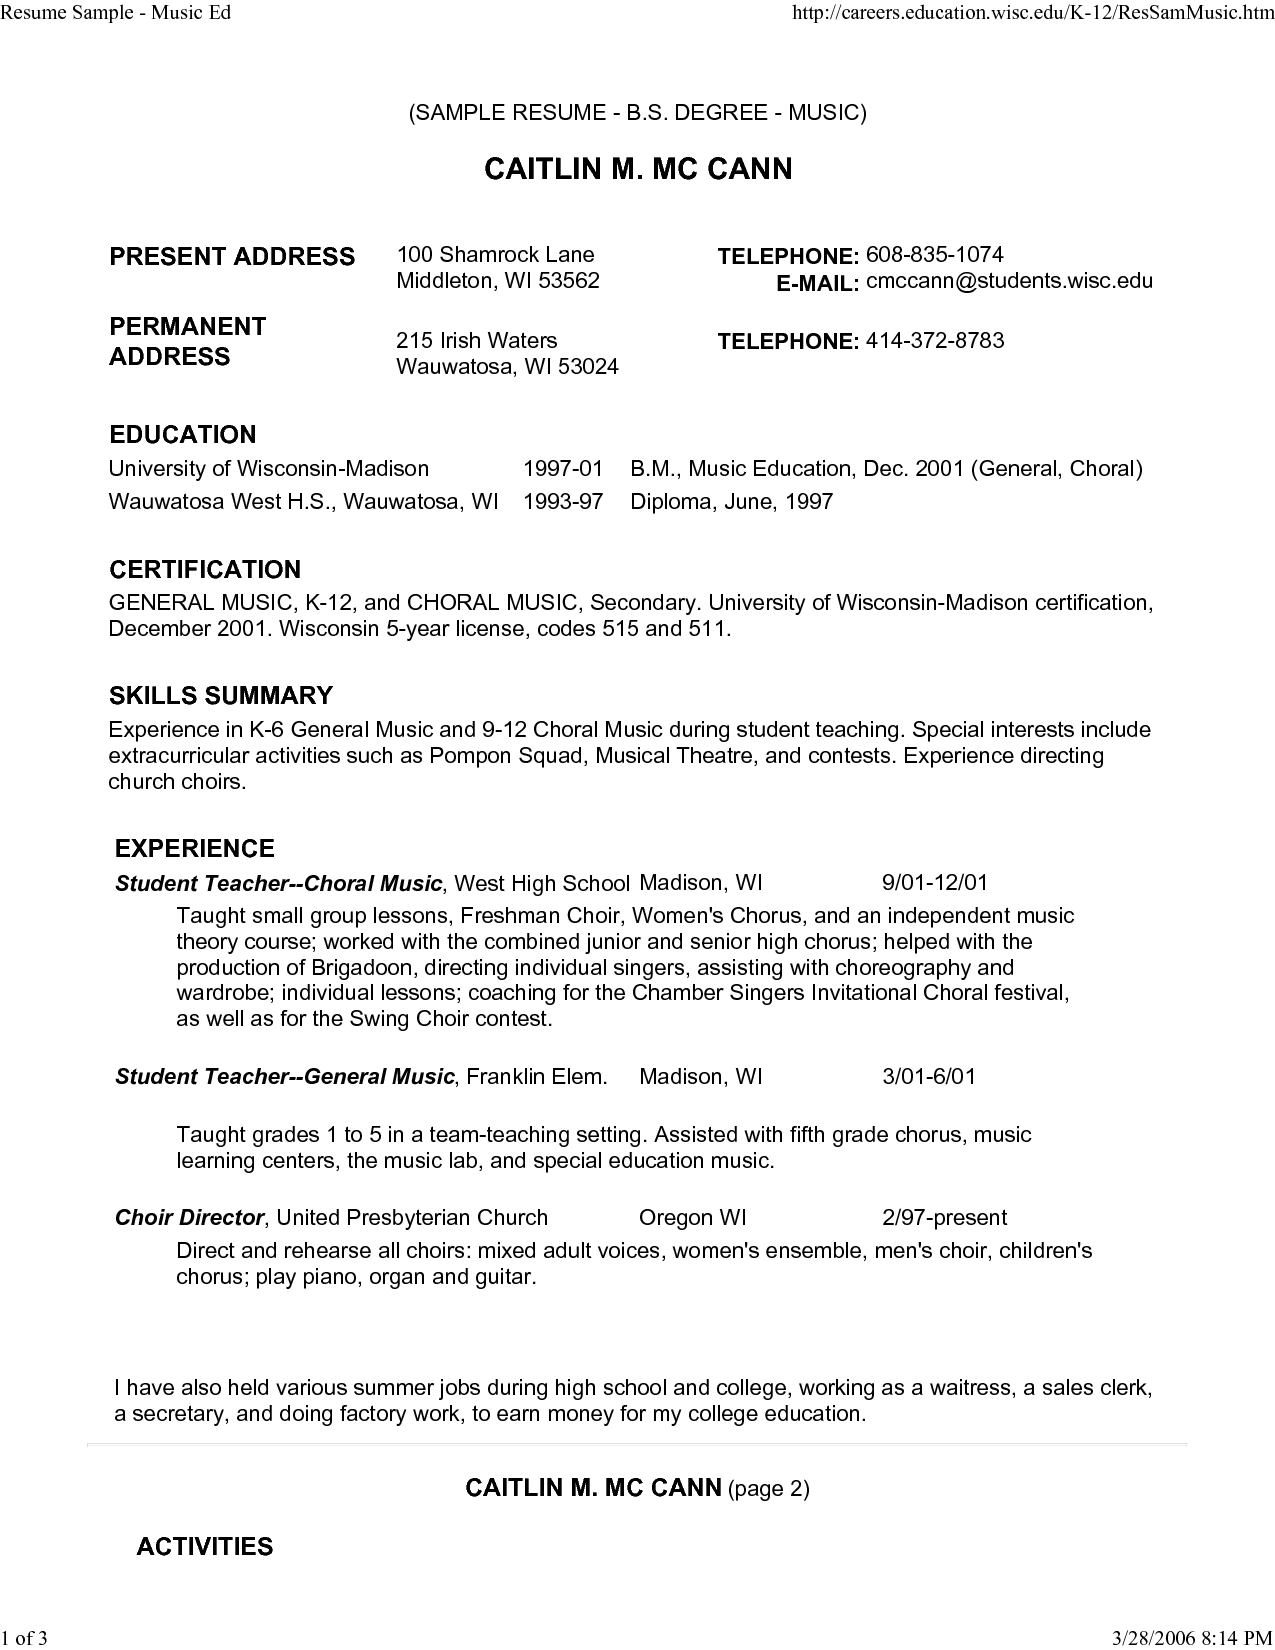 Resume Templates For Teachers Teacher Resume Templates Free Sample Example Format Genius